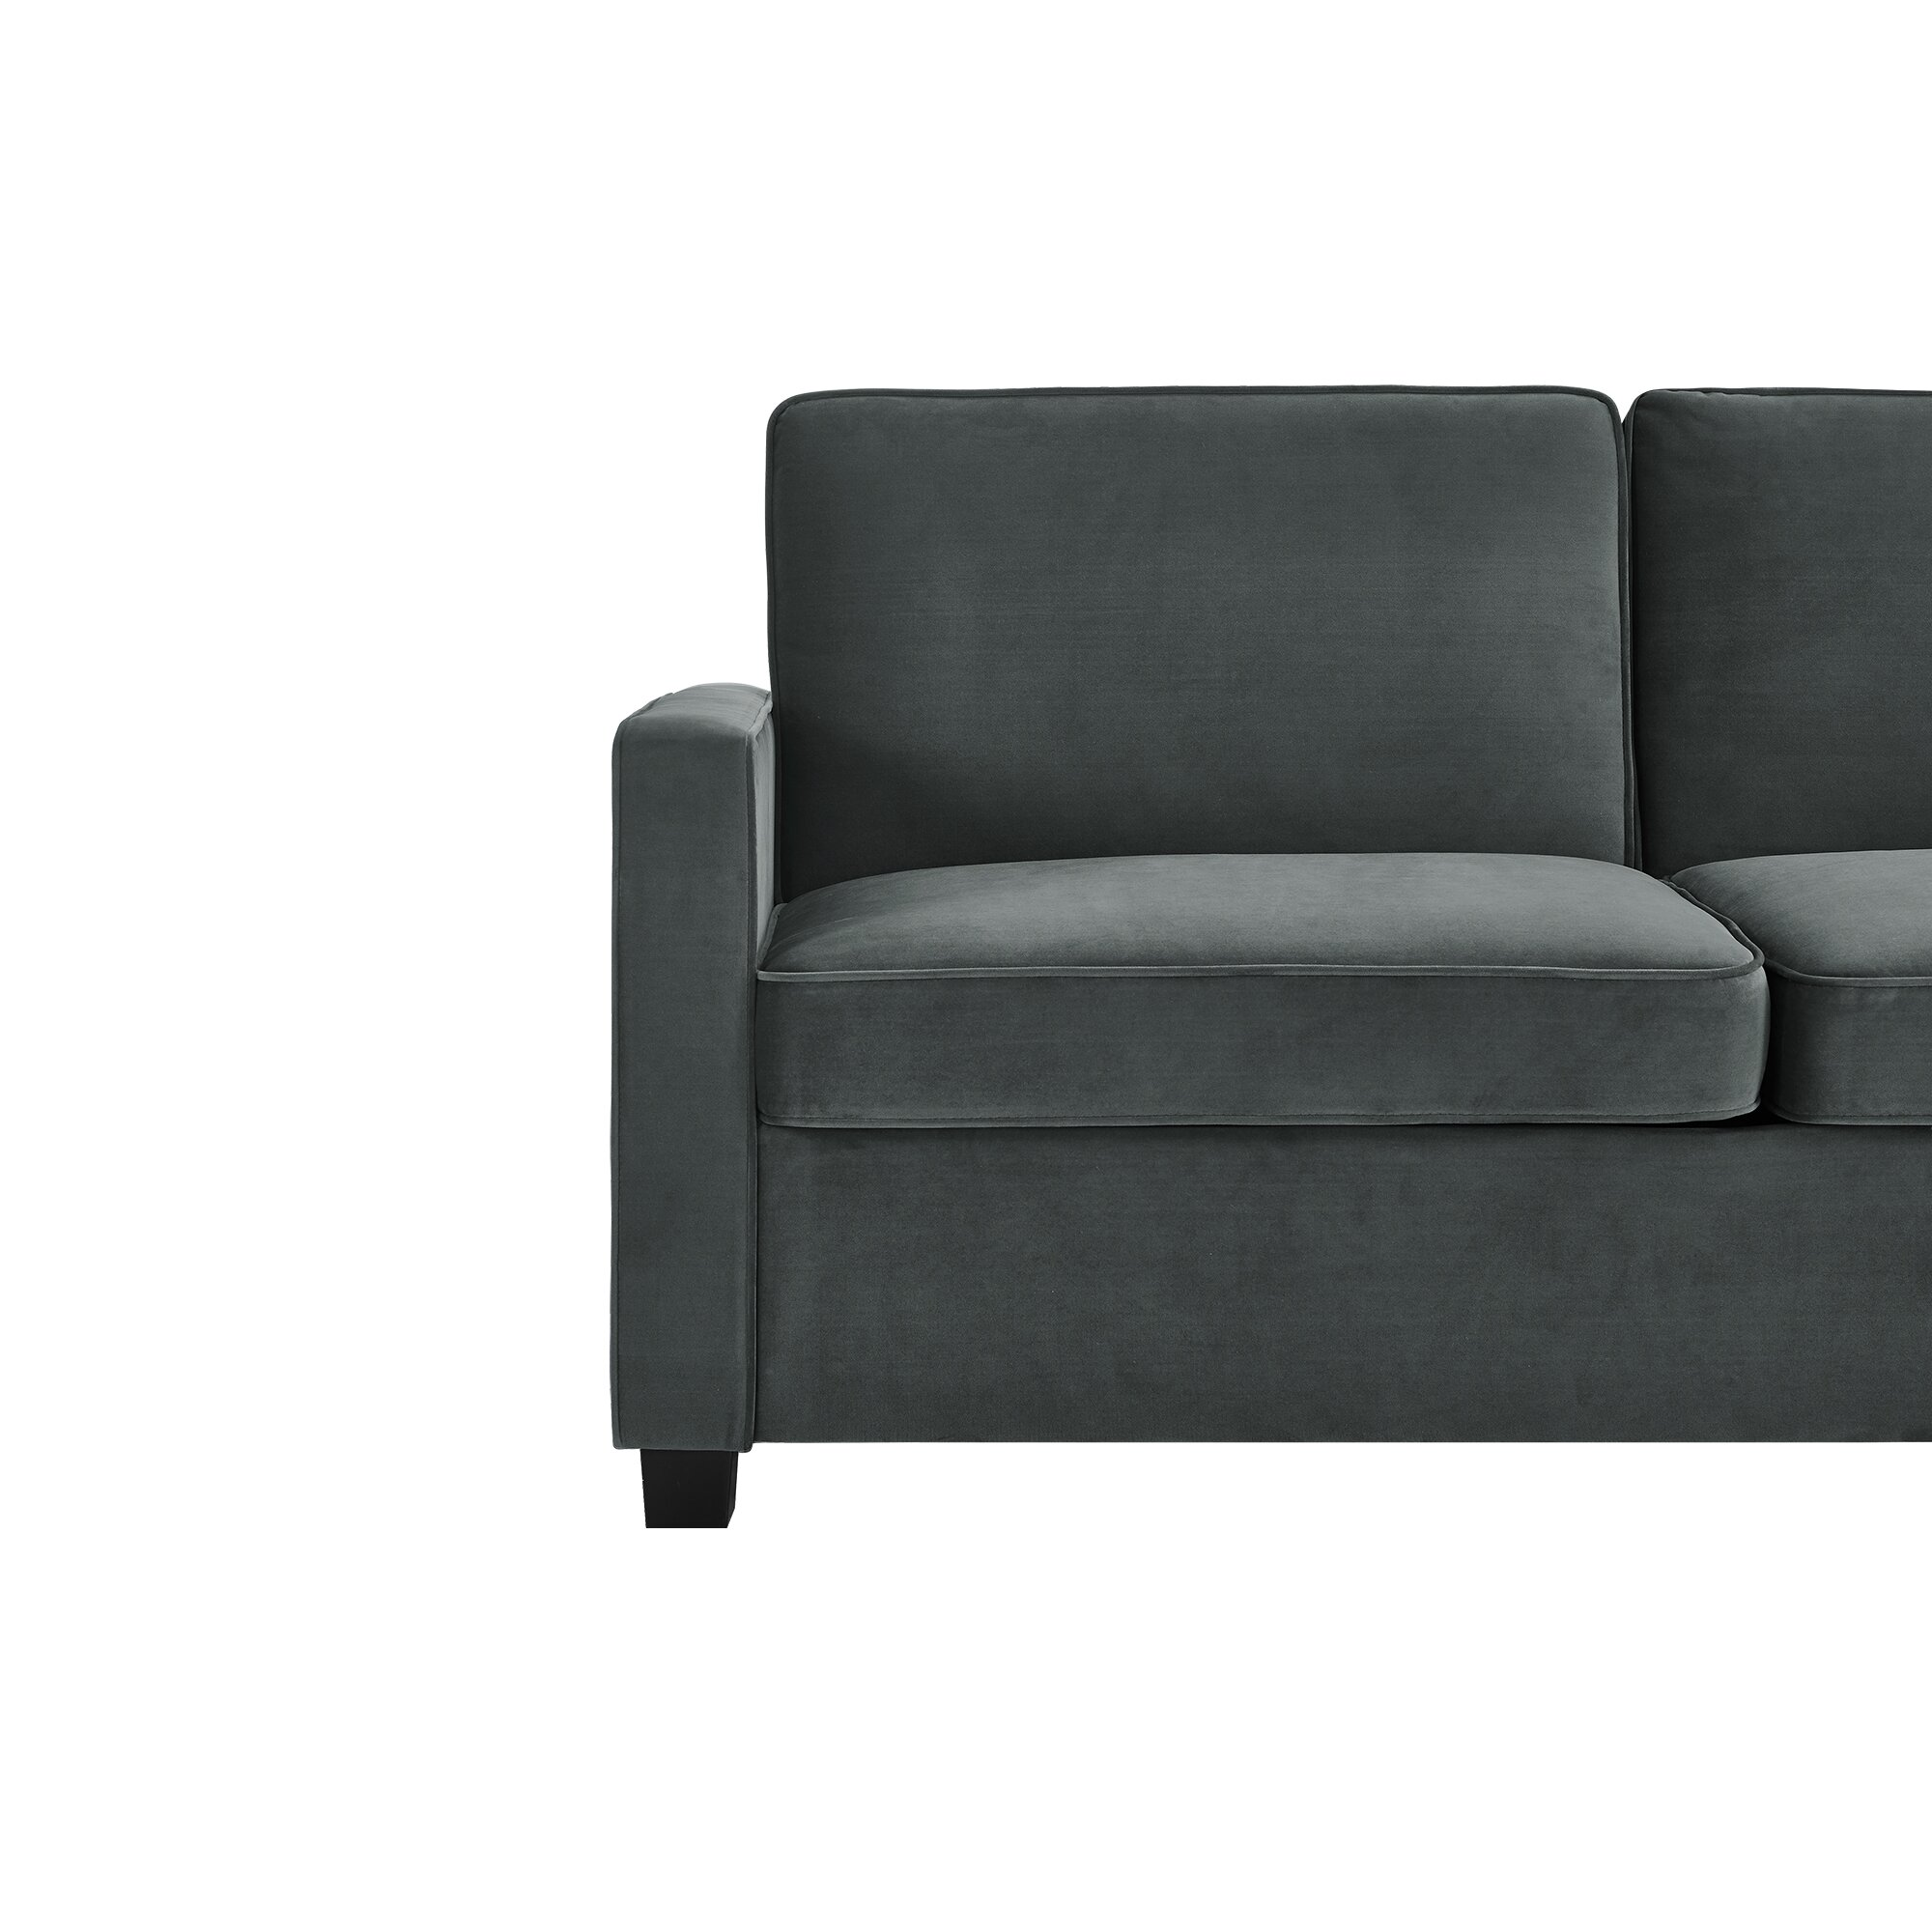 19 sleeper sofas toronto the best white leather sectional s